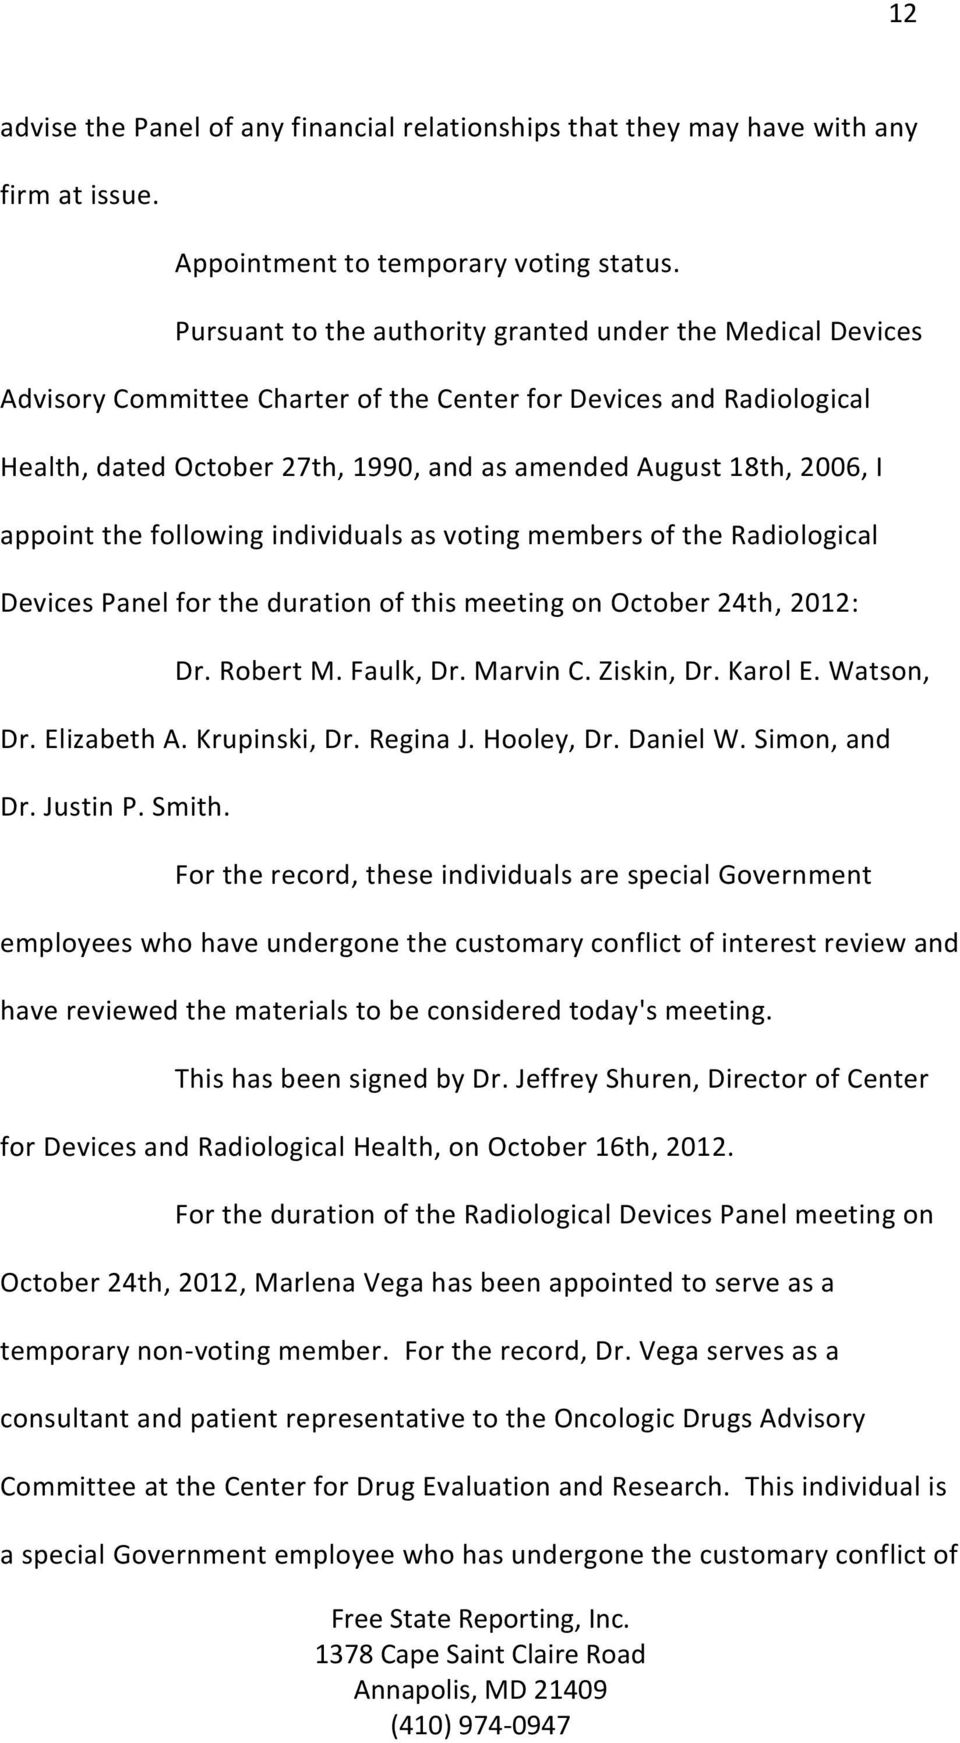 appoint the following individuals as voting members of the Radiological Devices Panel for the duration of this meeting on October 24th, 2012: Dr. Robert M. Faulk, Dr. Marvin C. Ziskin, Dr. Karol E.